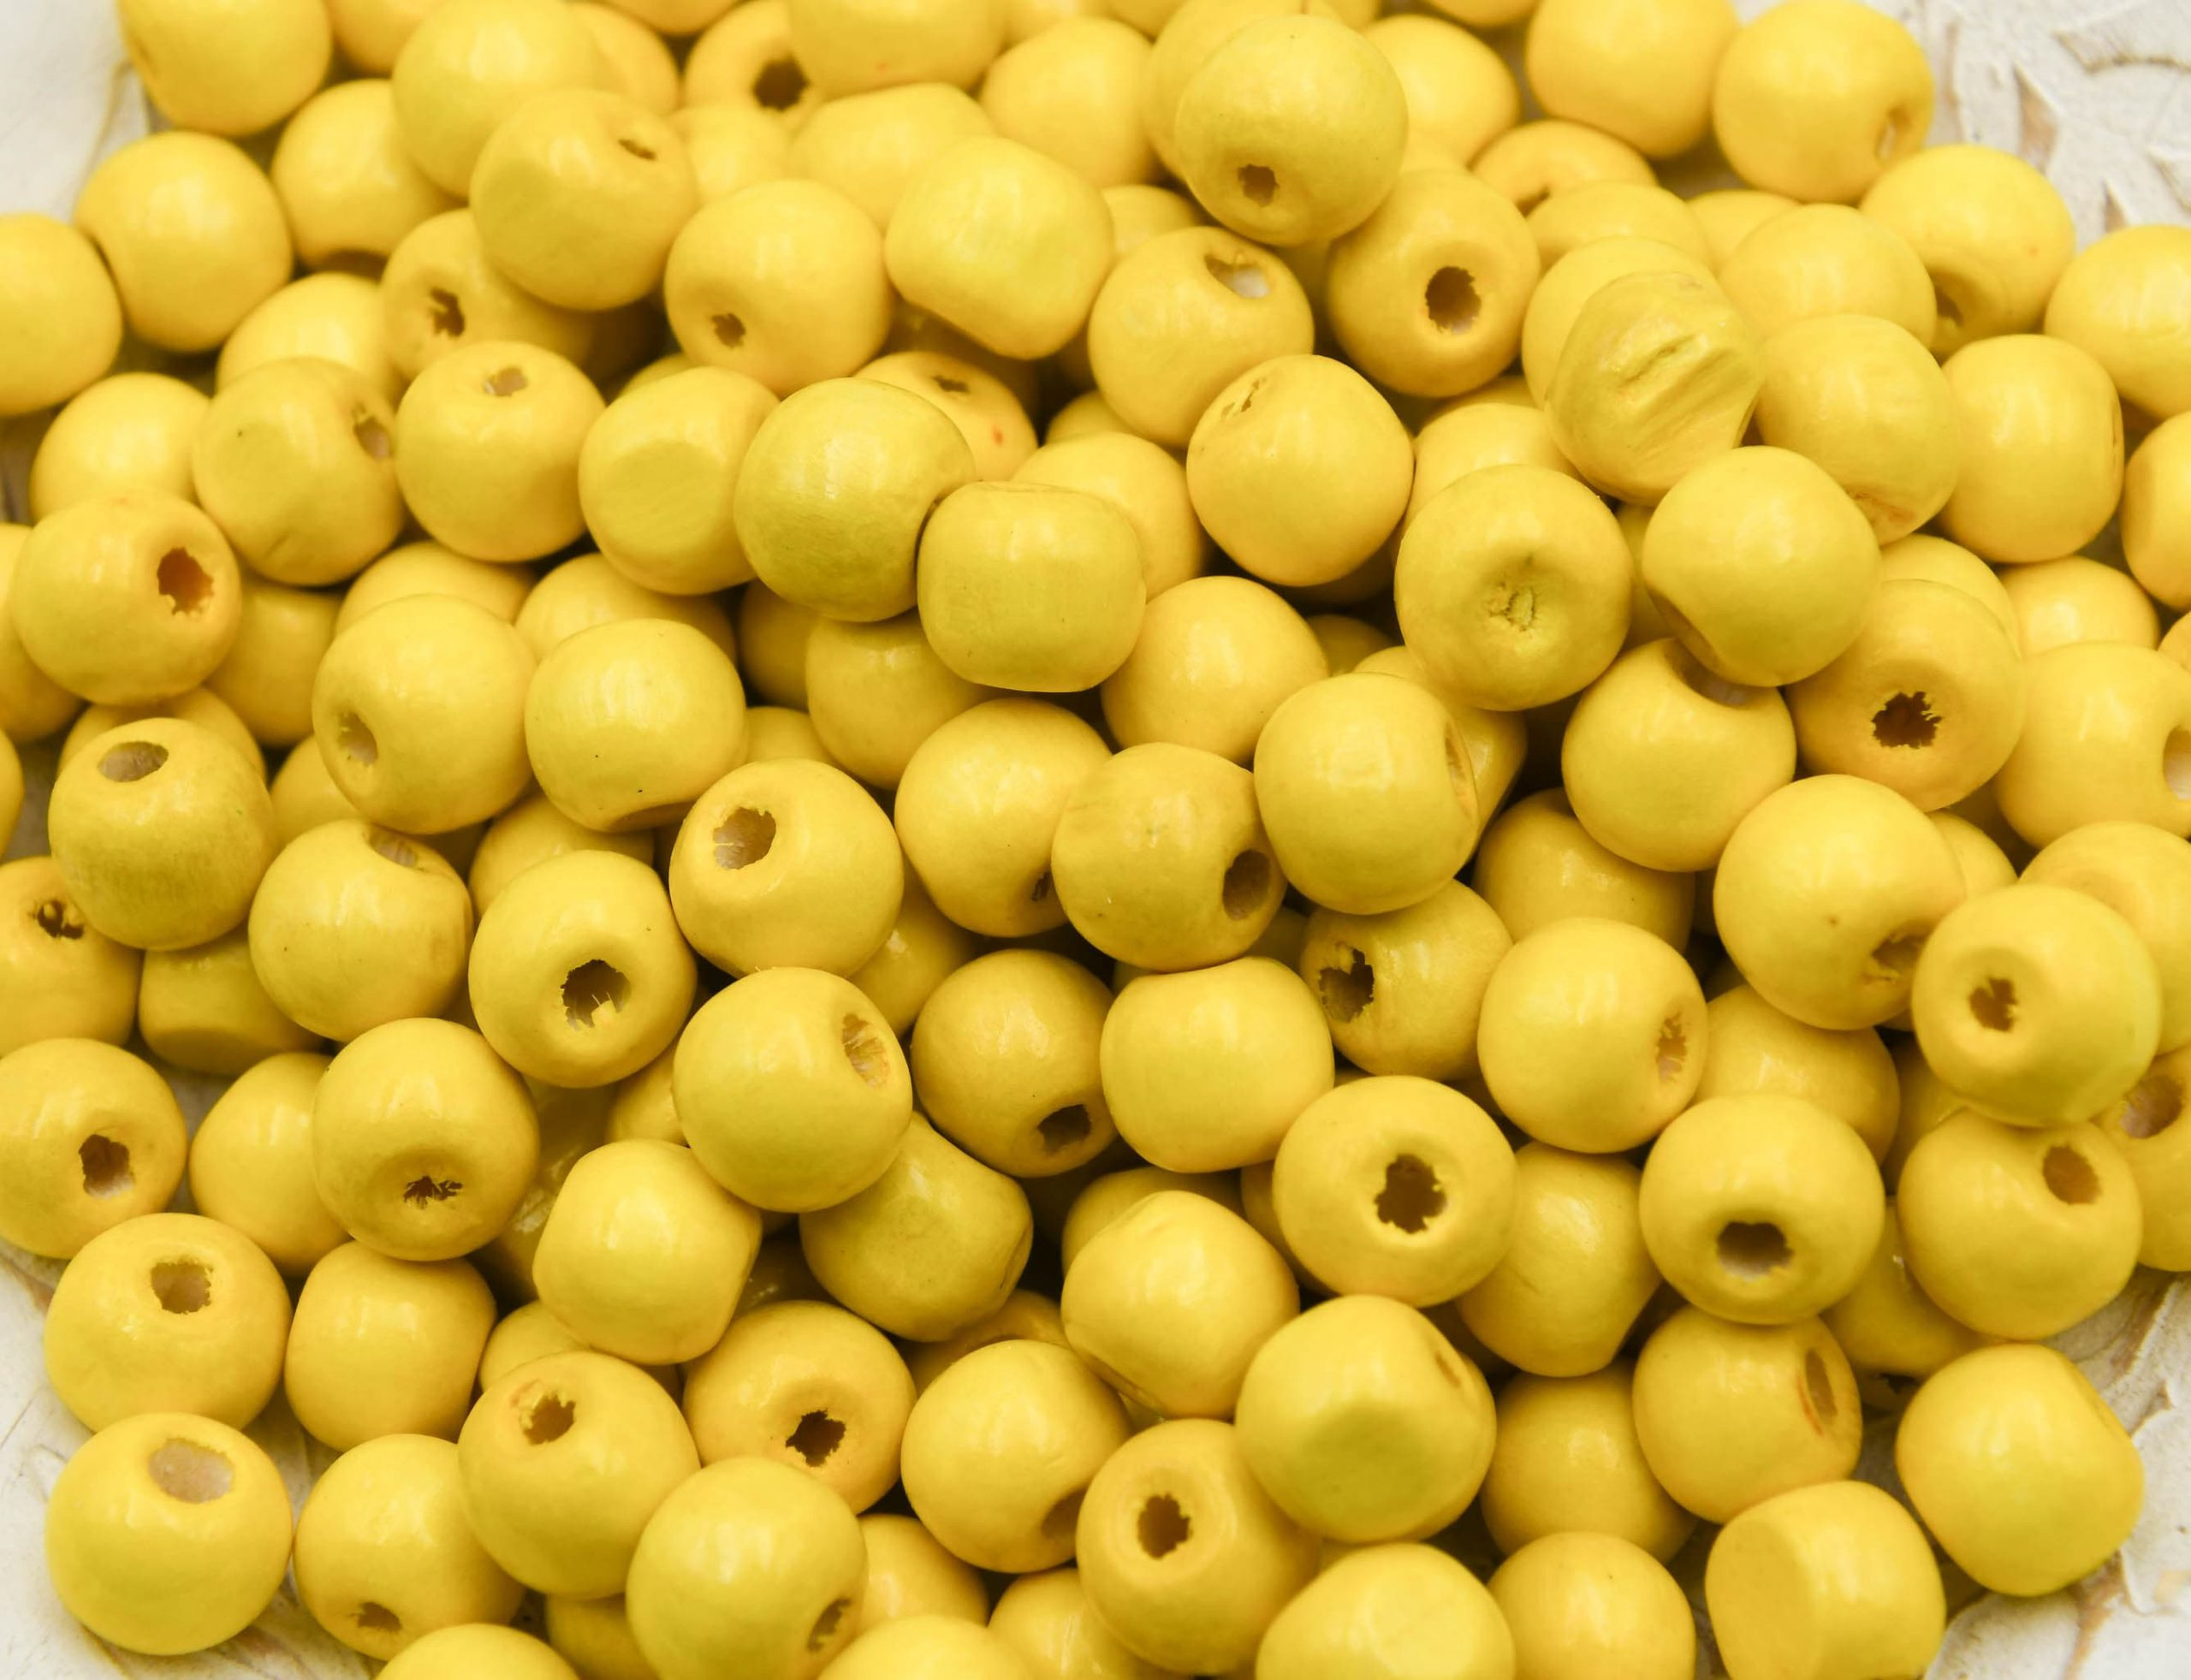 10mm yellow Wood   Beads, painted,  round 3mm hole   - 100 pieces -B3077